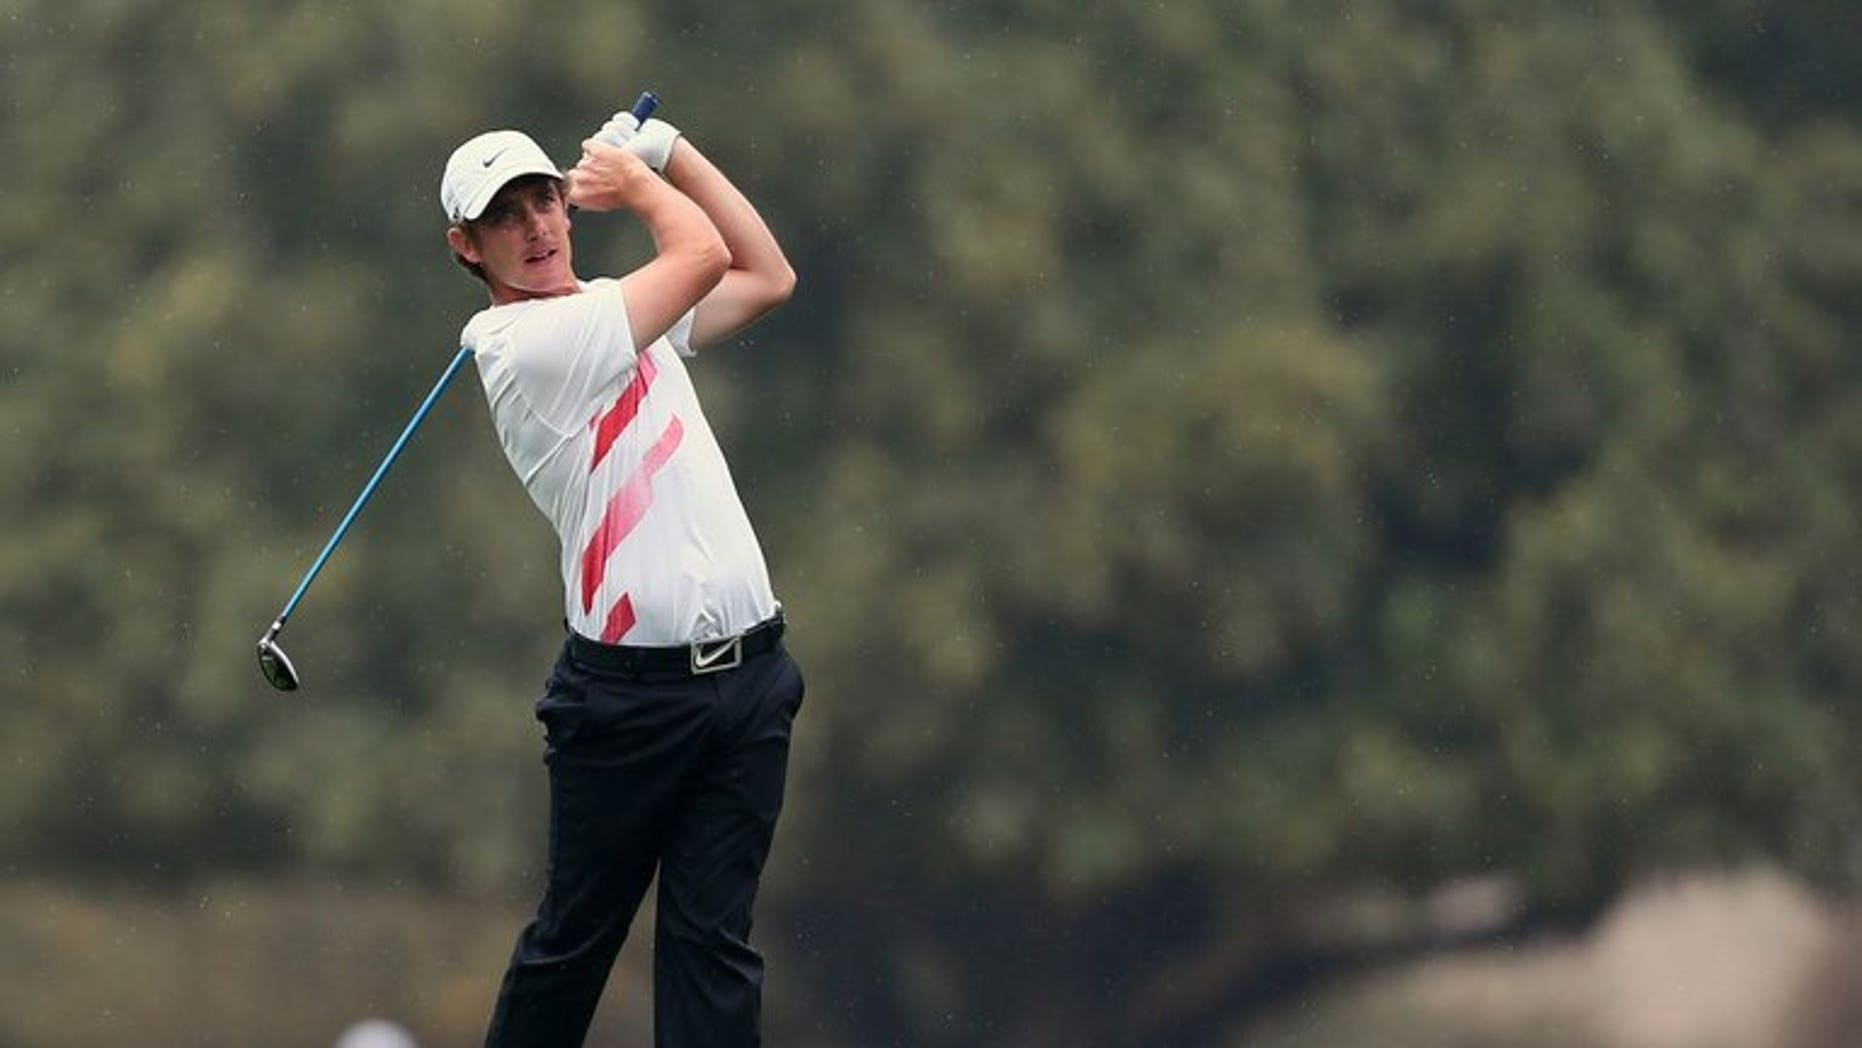 Tommy Fleetwood of Britain tees off during the third round of the Dubai Desert Classic golf tournament in Dubai on February 2, 2013. Fleetwood earned a share of the lead with Argentina's Ricardo Gonzalez after the third round of the Johnnie Walker Championship at Gleneagles on Saturday.